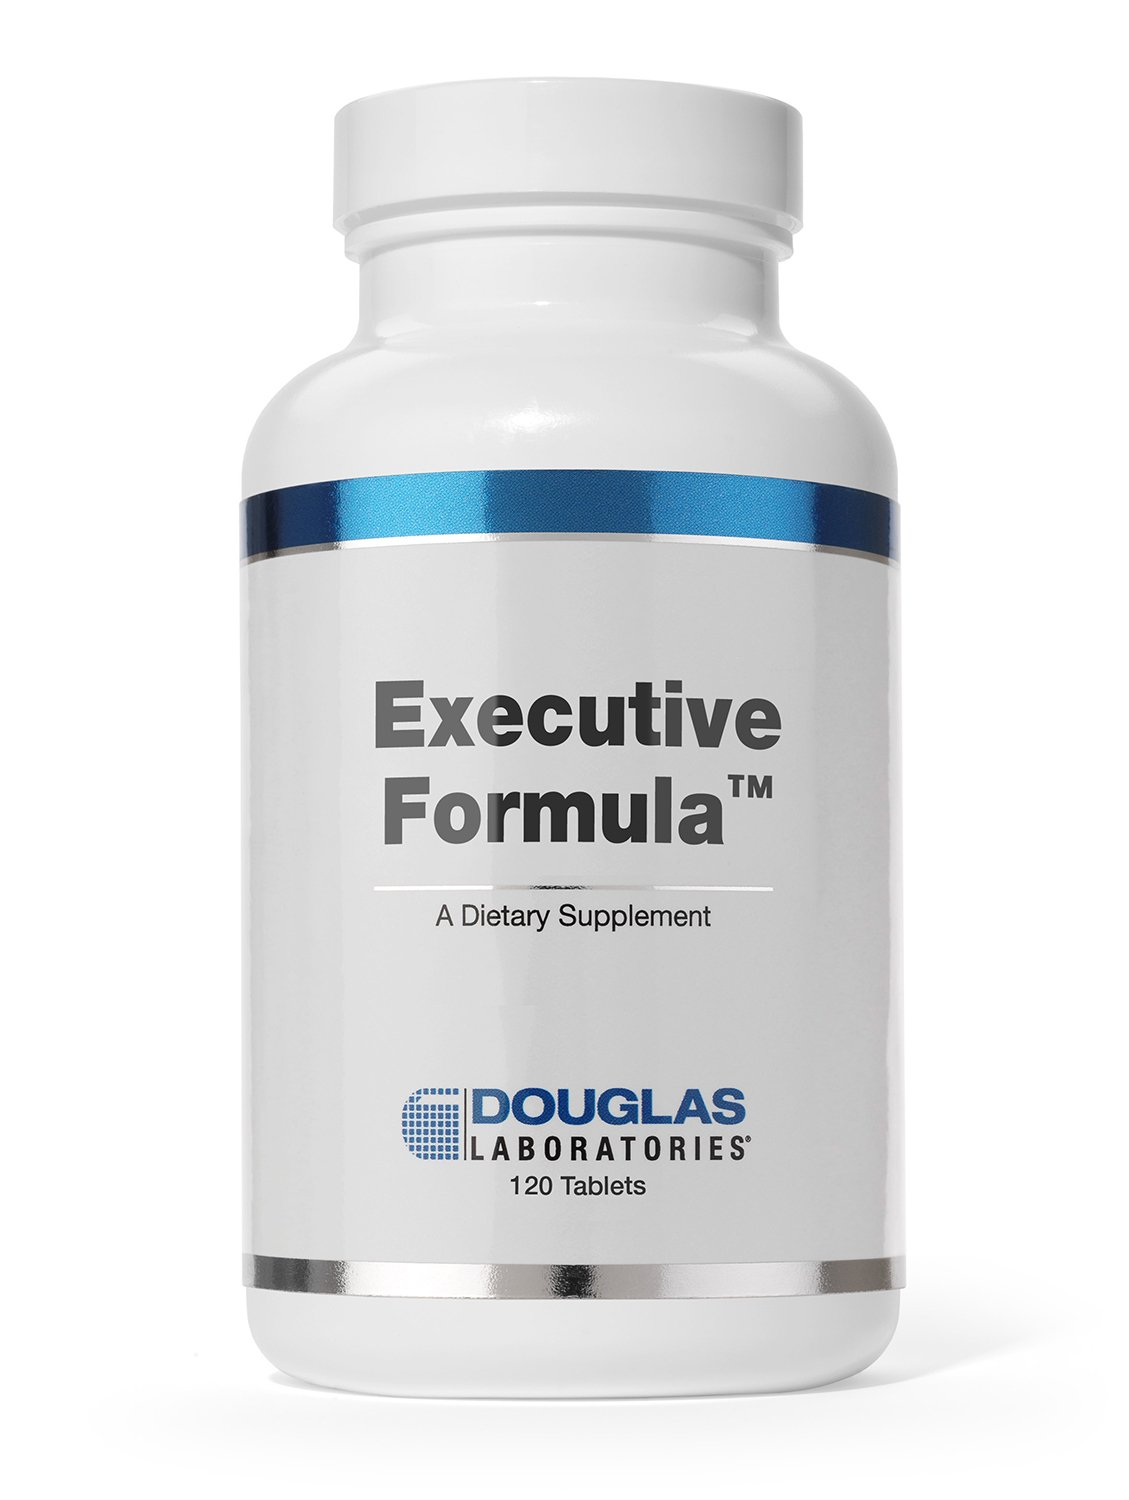 Douglas Laboratories – Executive Stress Formula – Vitamins, Minerals, Enzymes, and Herbals to Support Body s Defense Against Stress* – 120 Tablets